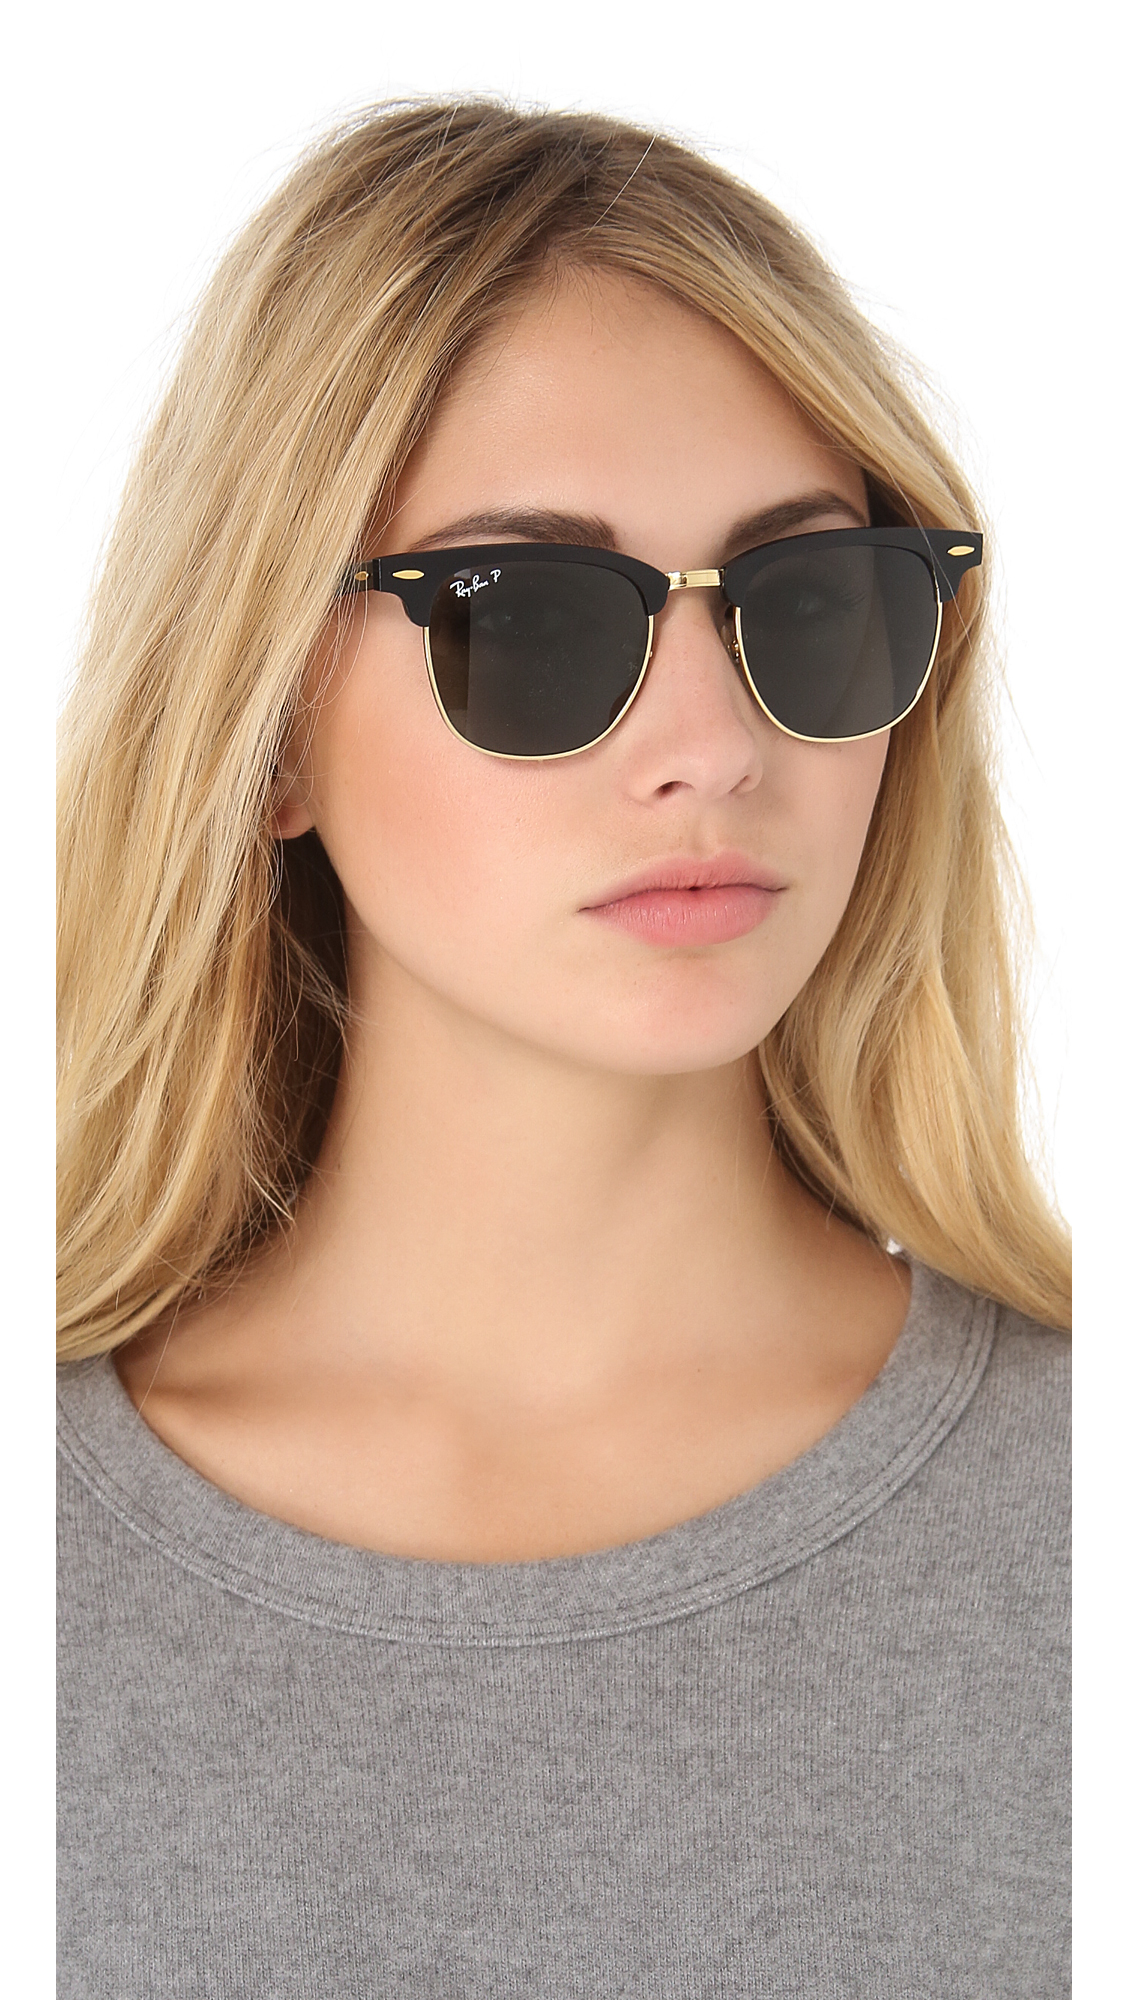 814c42e985 ... amazon ray ban oversized two tone clubmaster sunglasses shopbop a5e20  6f621